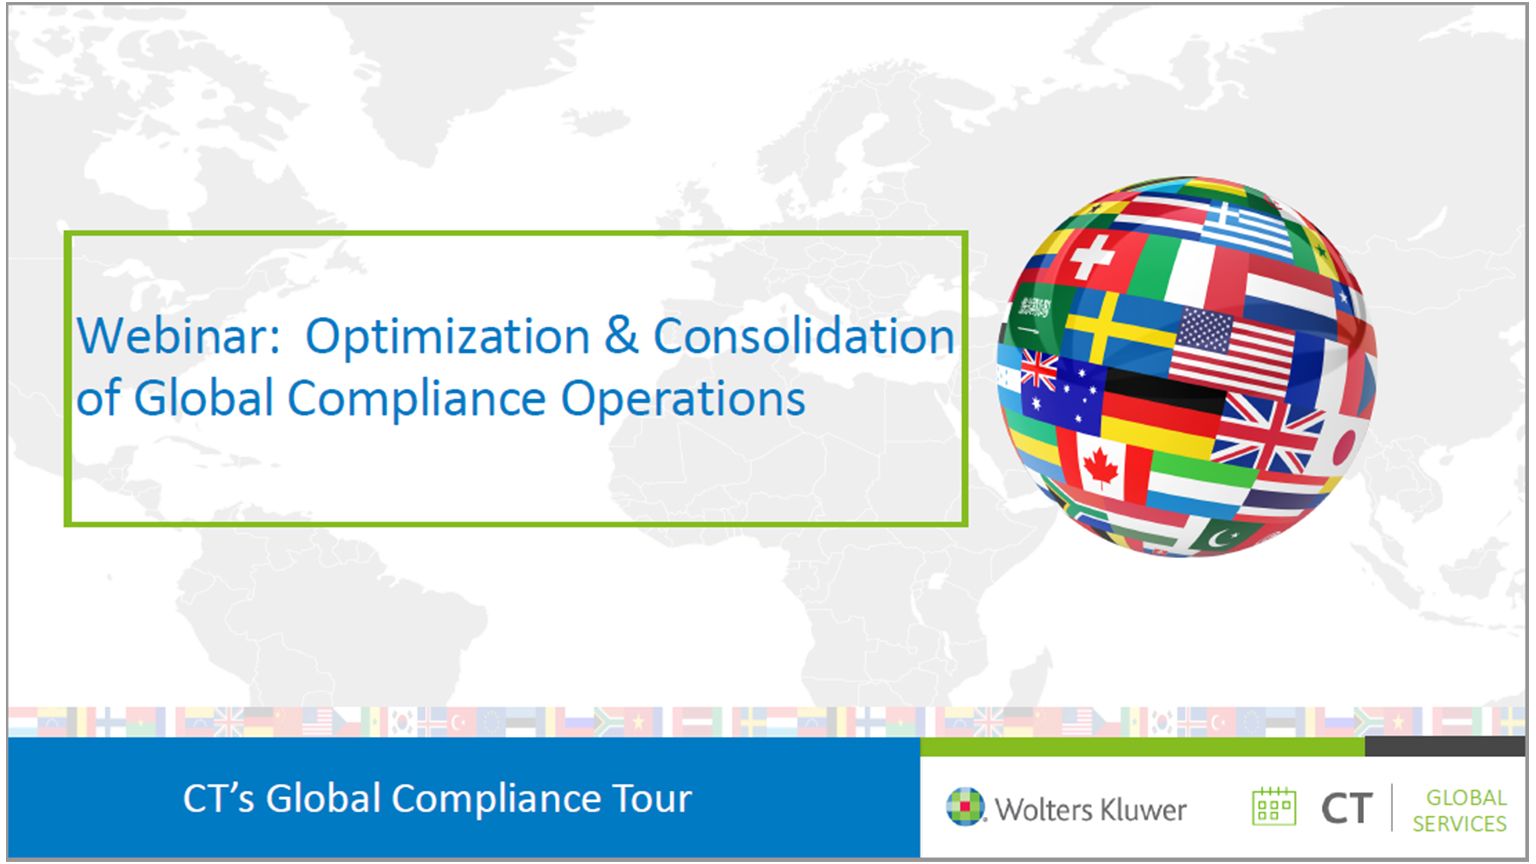 Webinar: Optimization & Consolidation of Global Compliance Operations